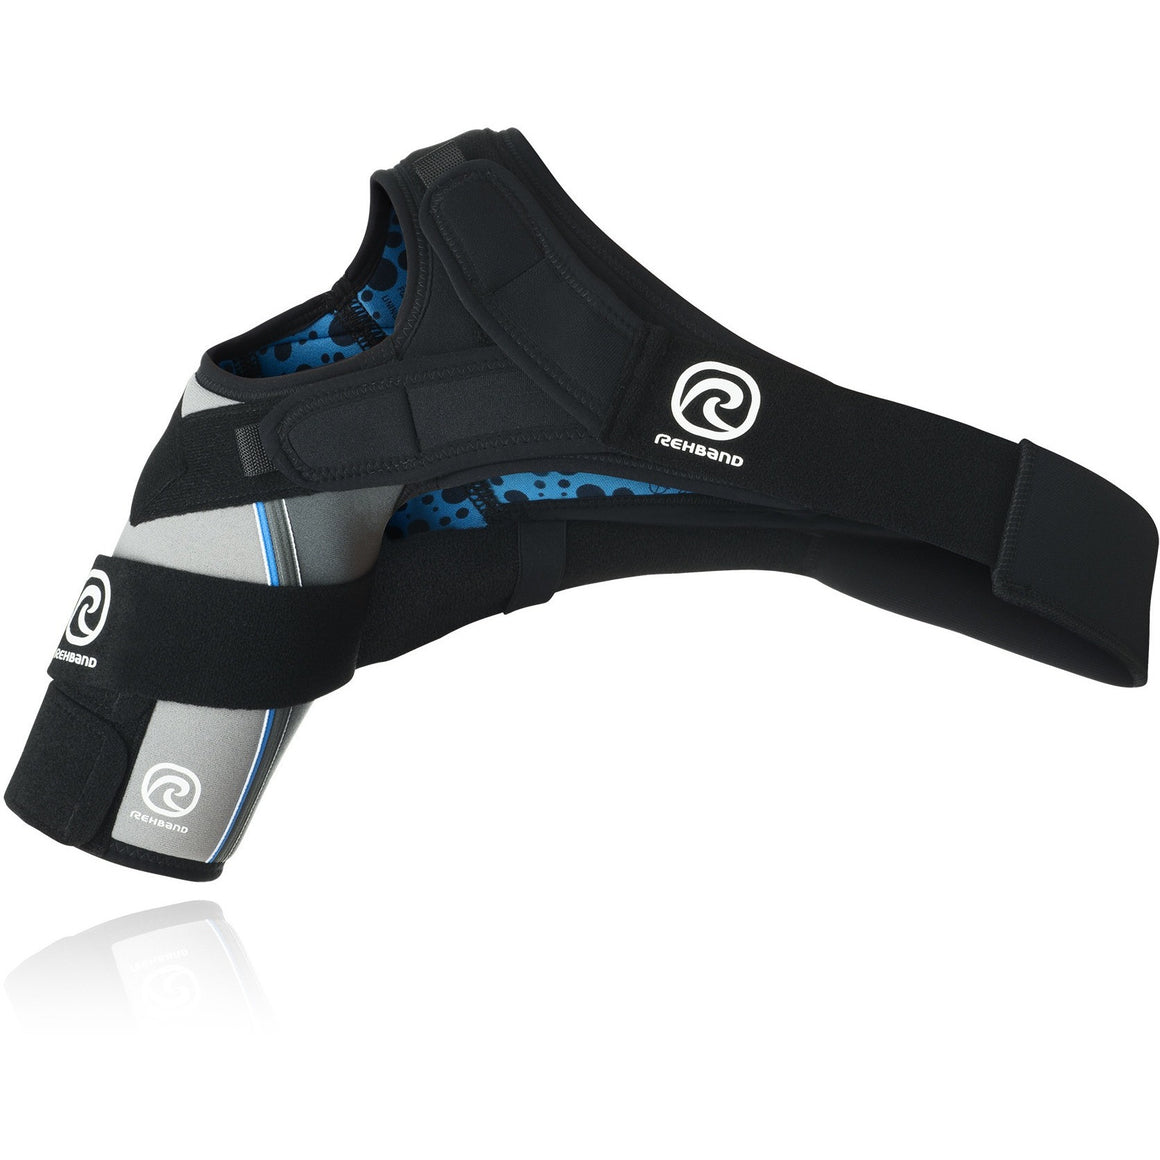 Rehband X- Stable 7731 Shoulder Support